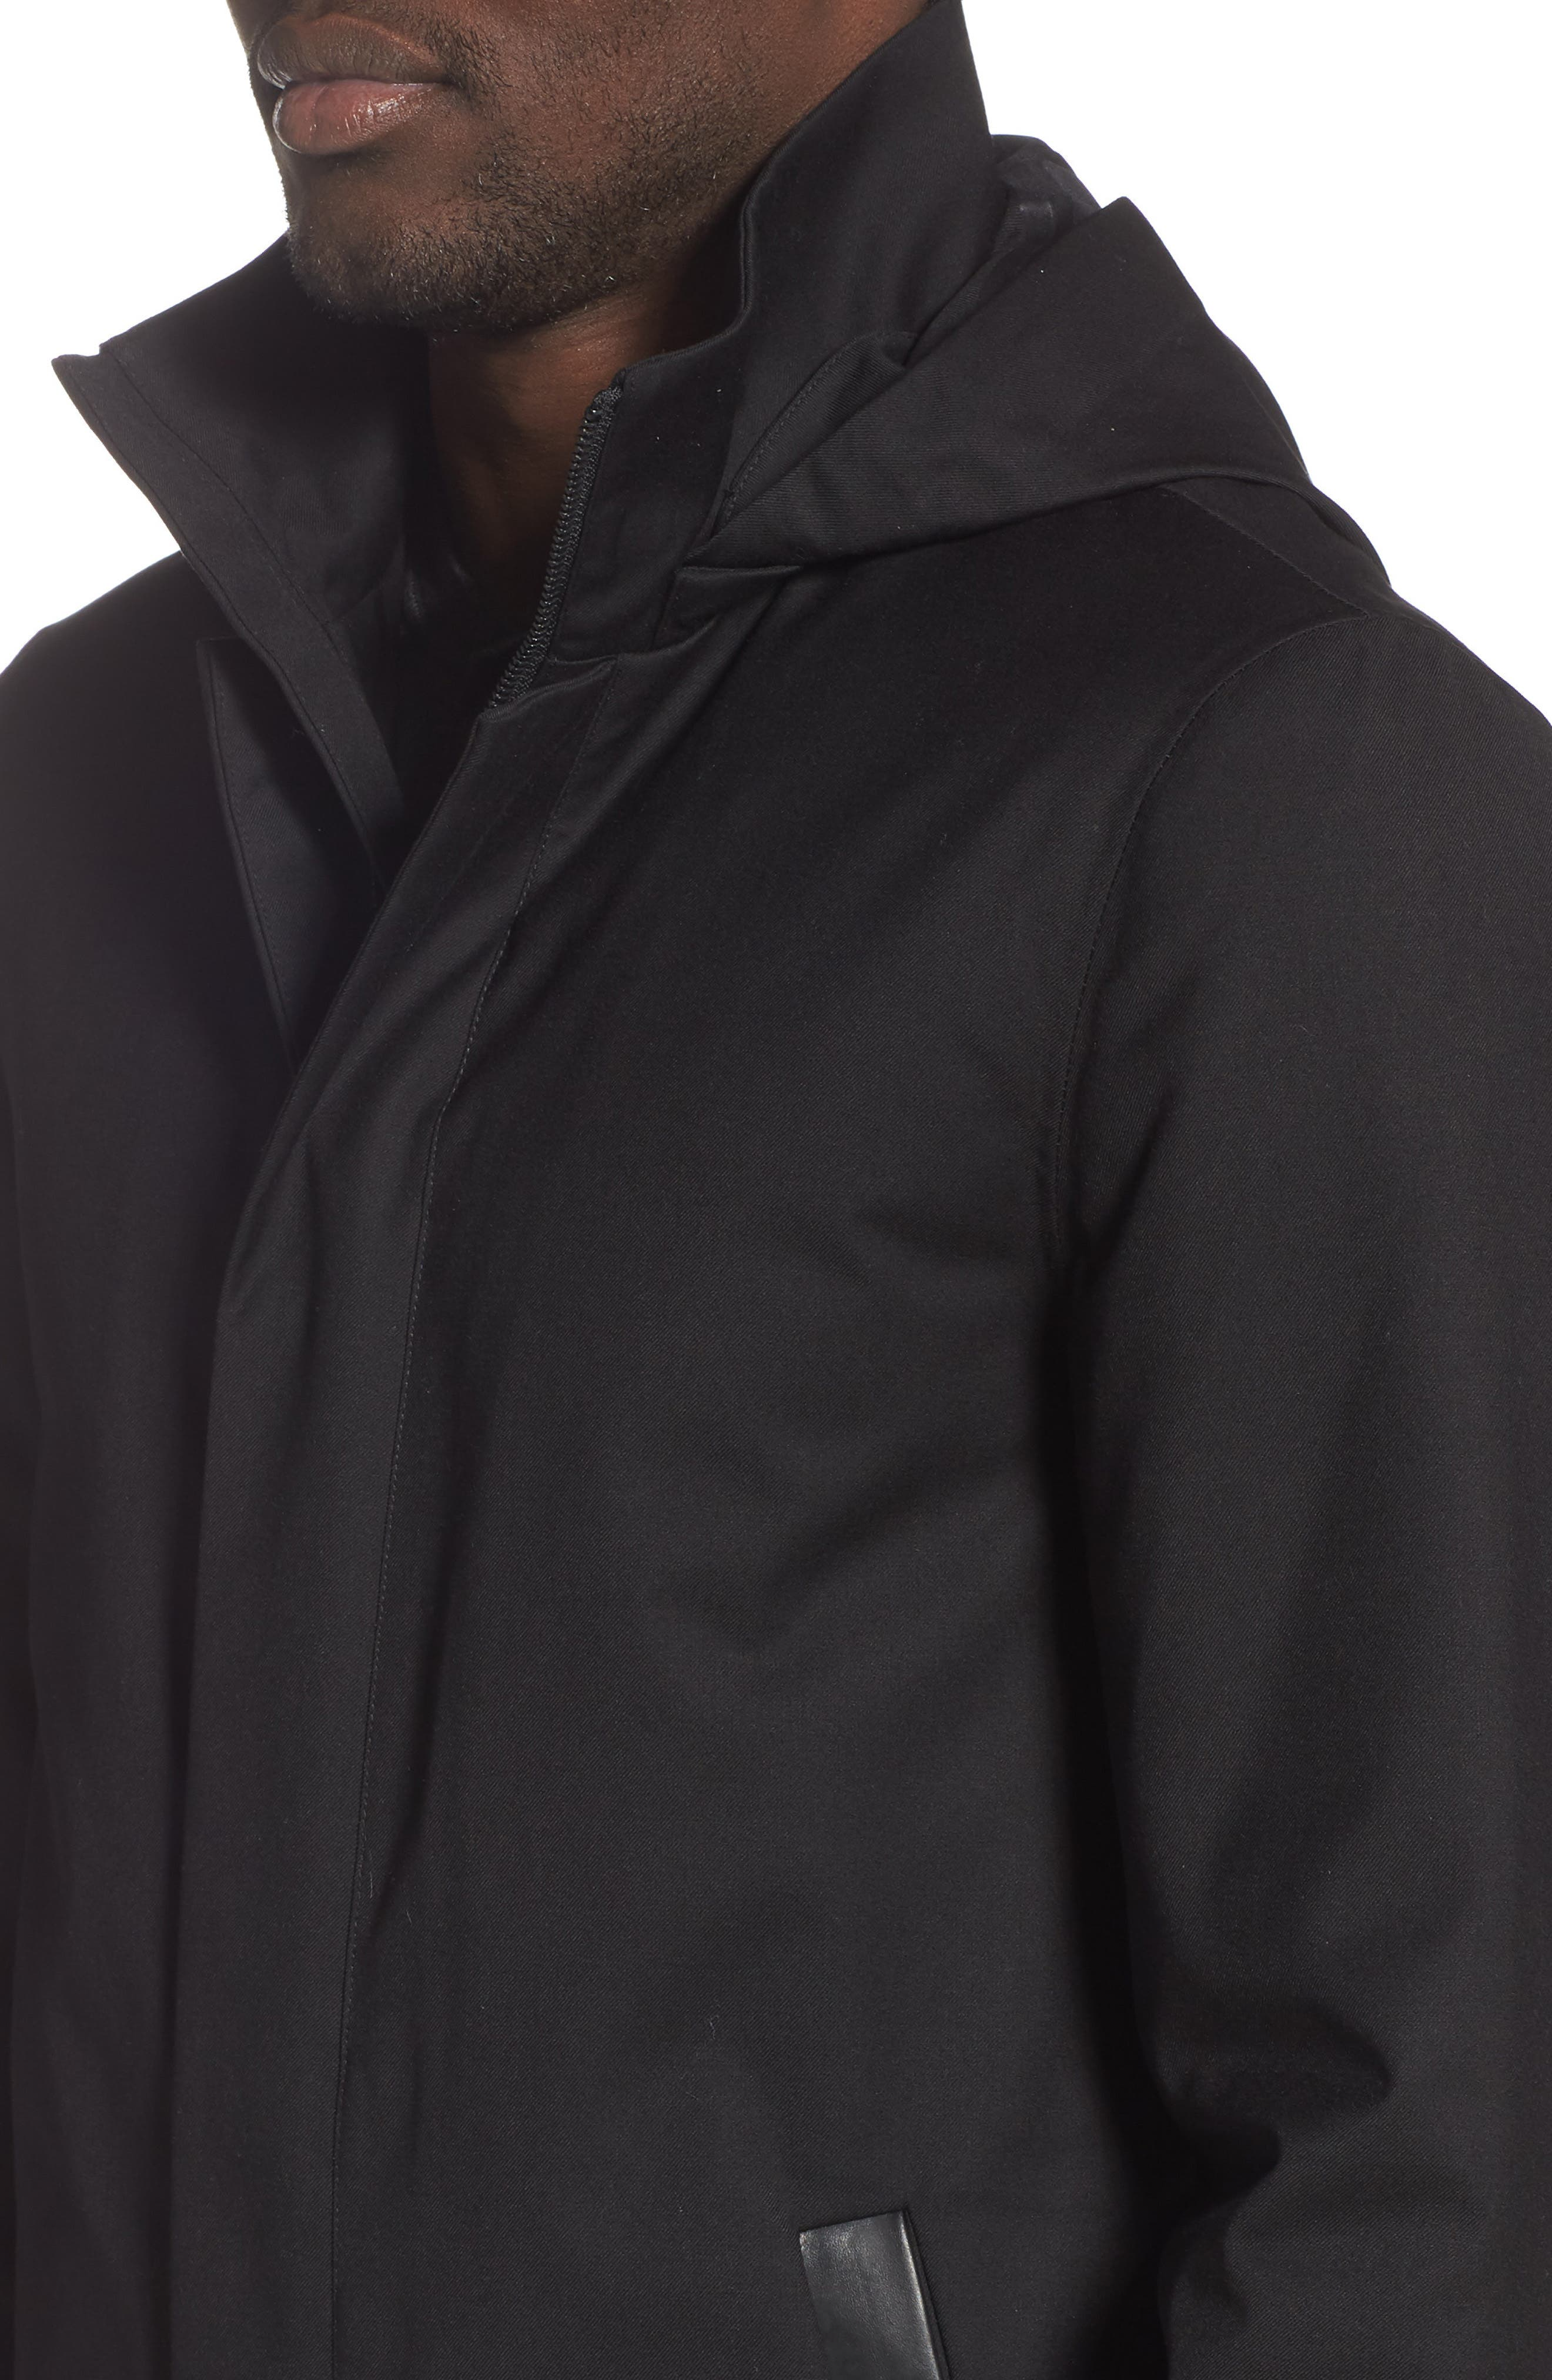 MACKAGE, Thorin-Z Jacket with Removable Down Lining, Alternate thumbnail 4, color, BLACK